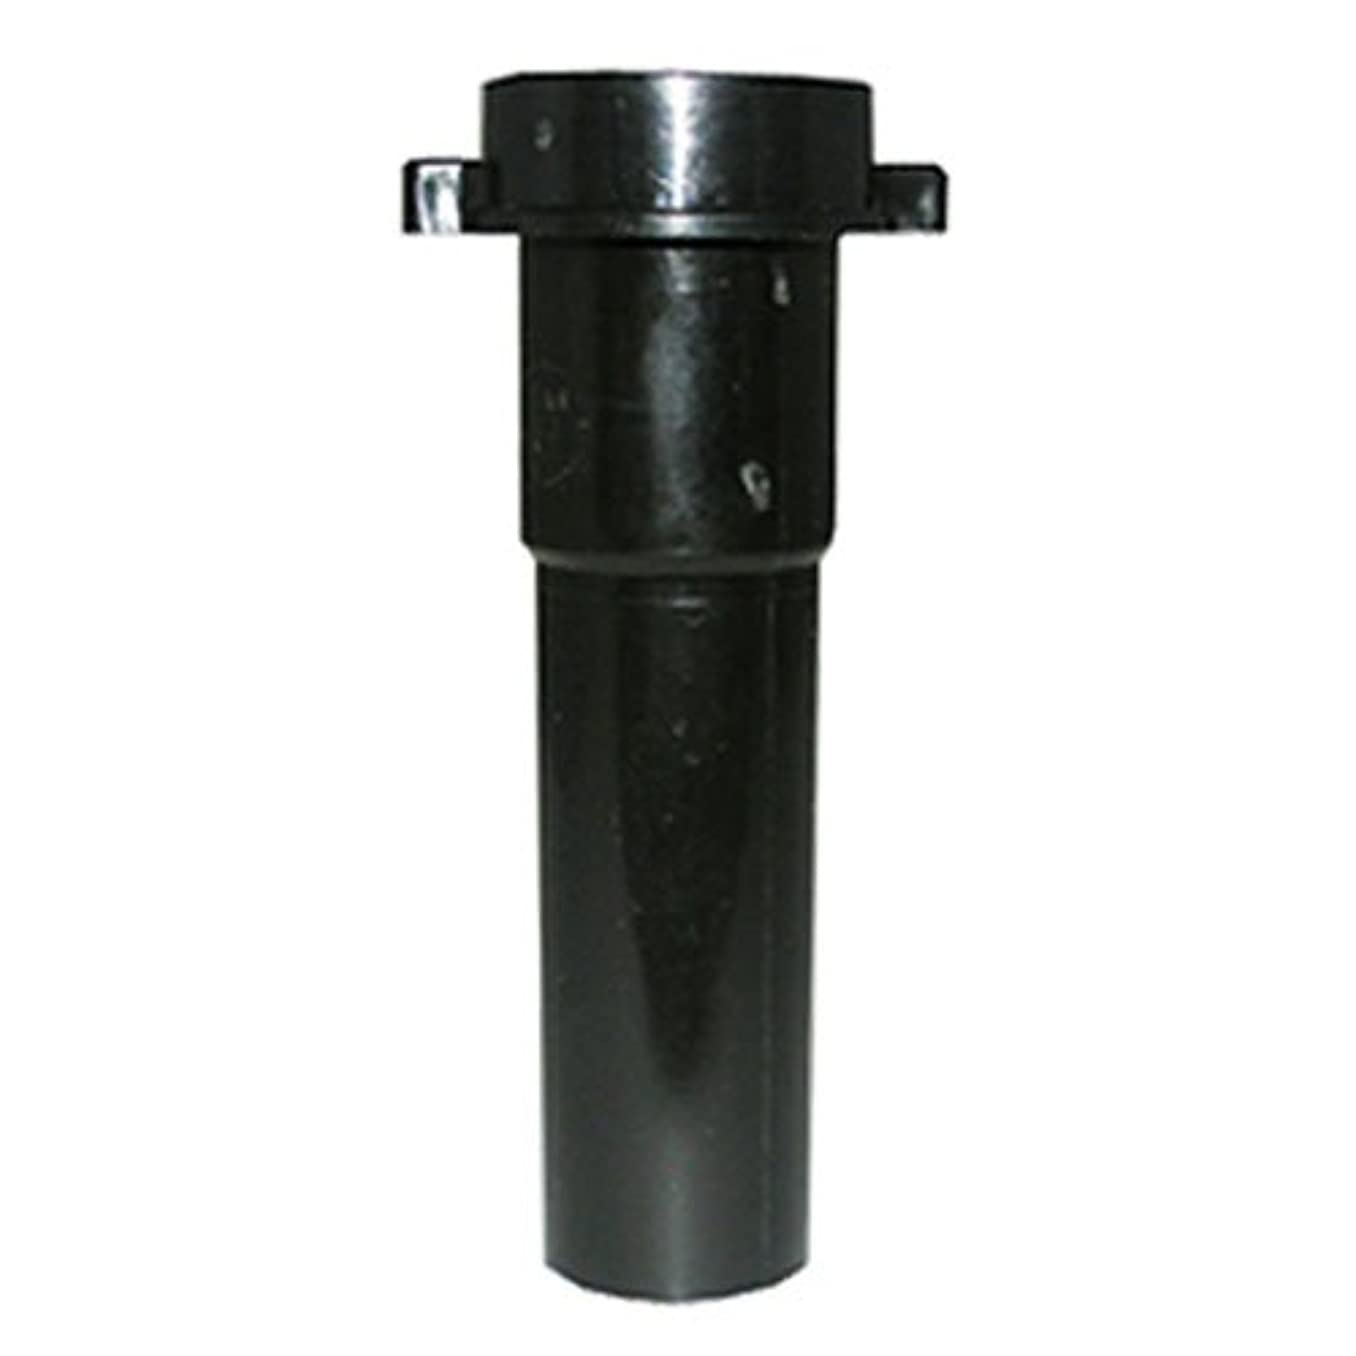 LASCO 03-4361 Black Plastic Tubular 1-1/2-Inch by 6-Inch Slip Joint Extension with nut and Washer